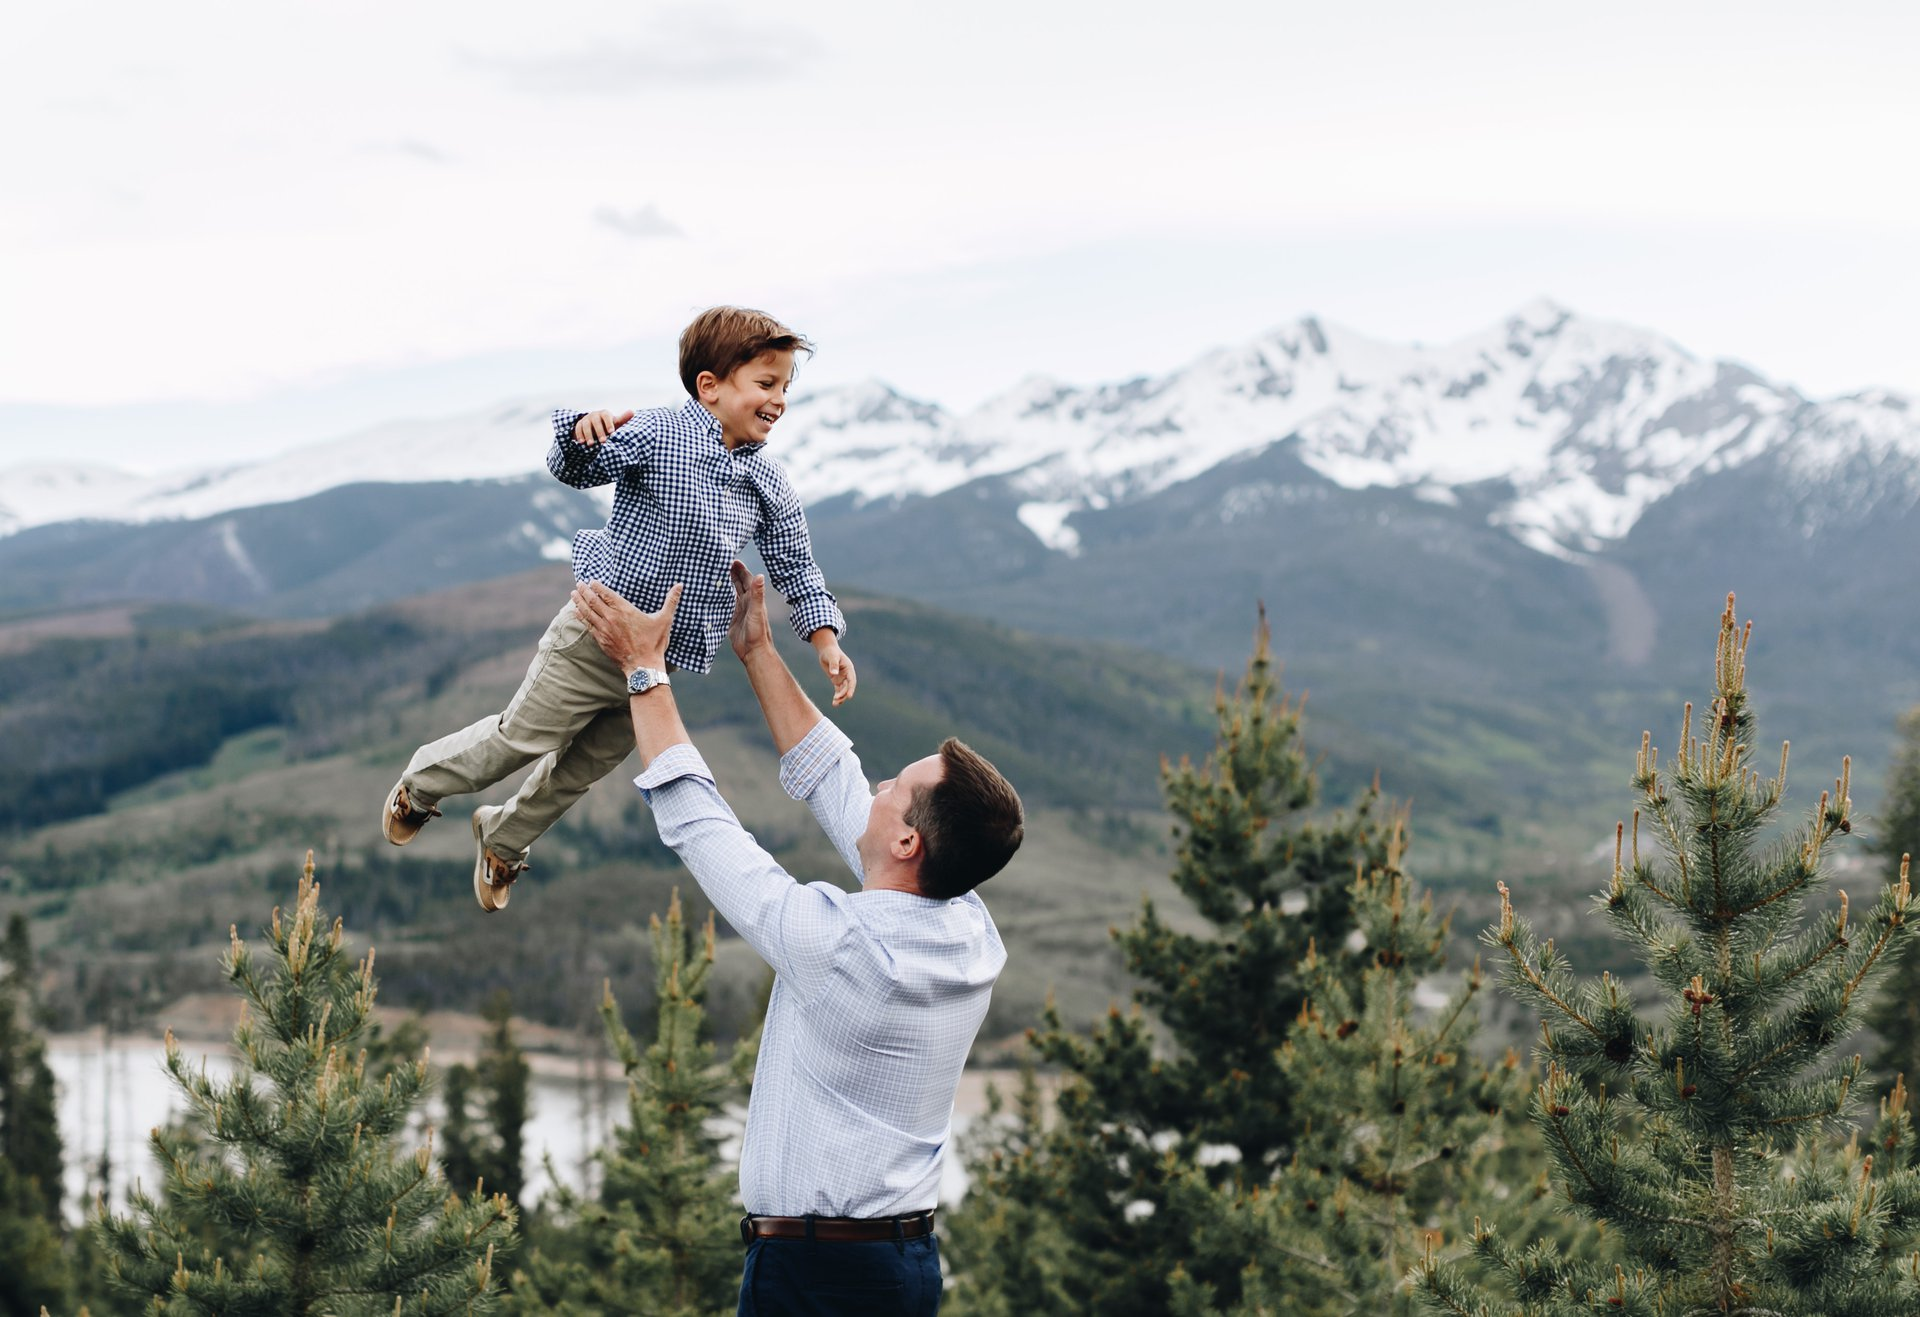 Breckenridge-United States-travel-story-Flytographer-6